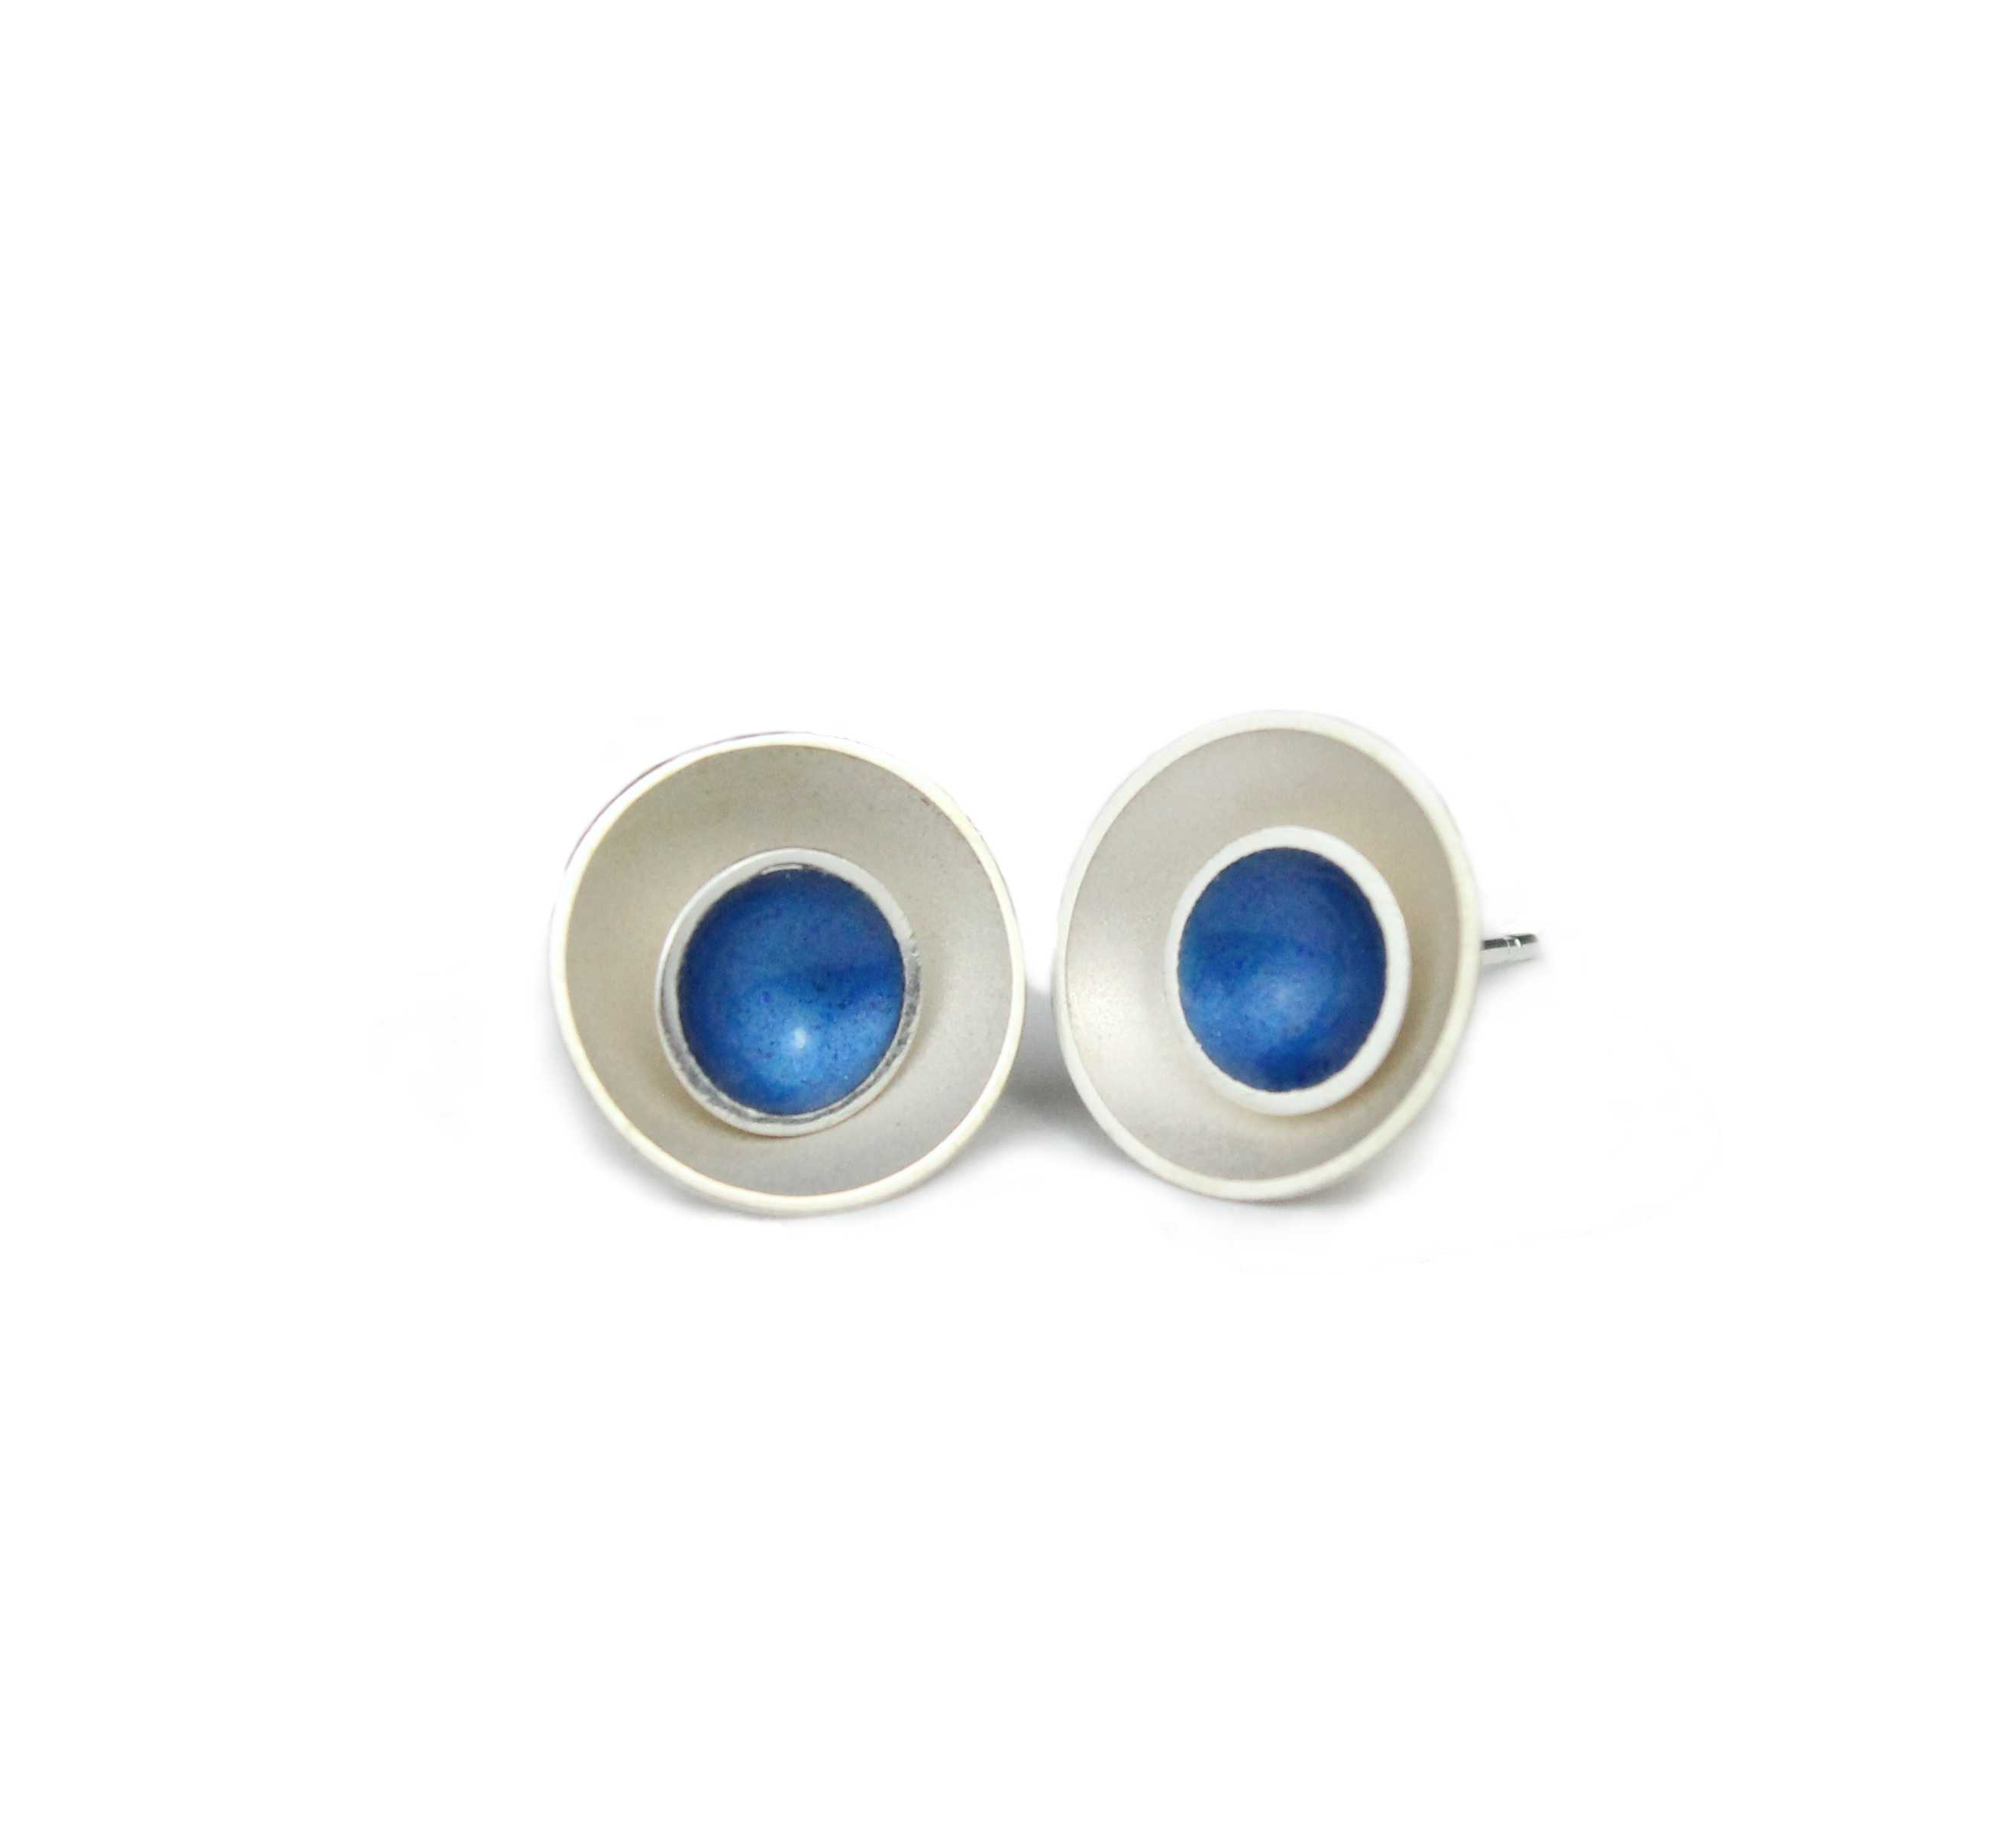 072f3c9e1 Large Target Silver Stud Earrings Kingfisher Blue | Contemporary ...